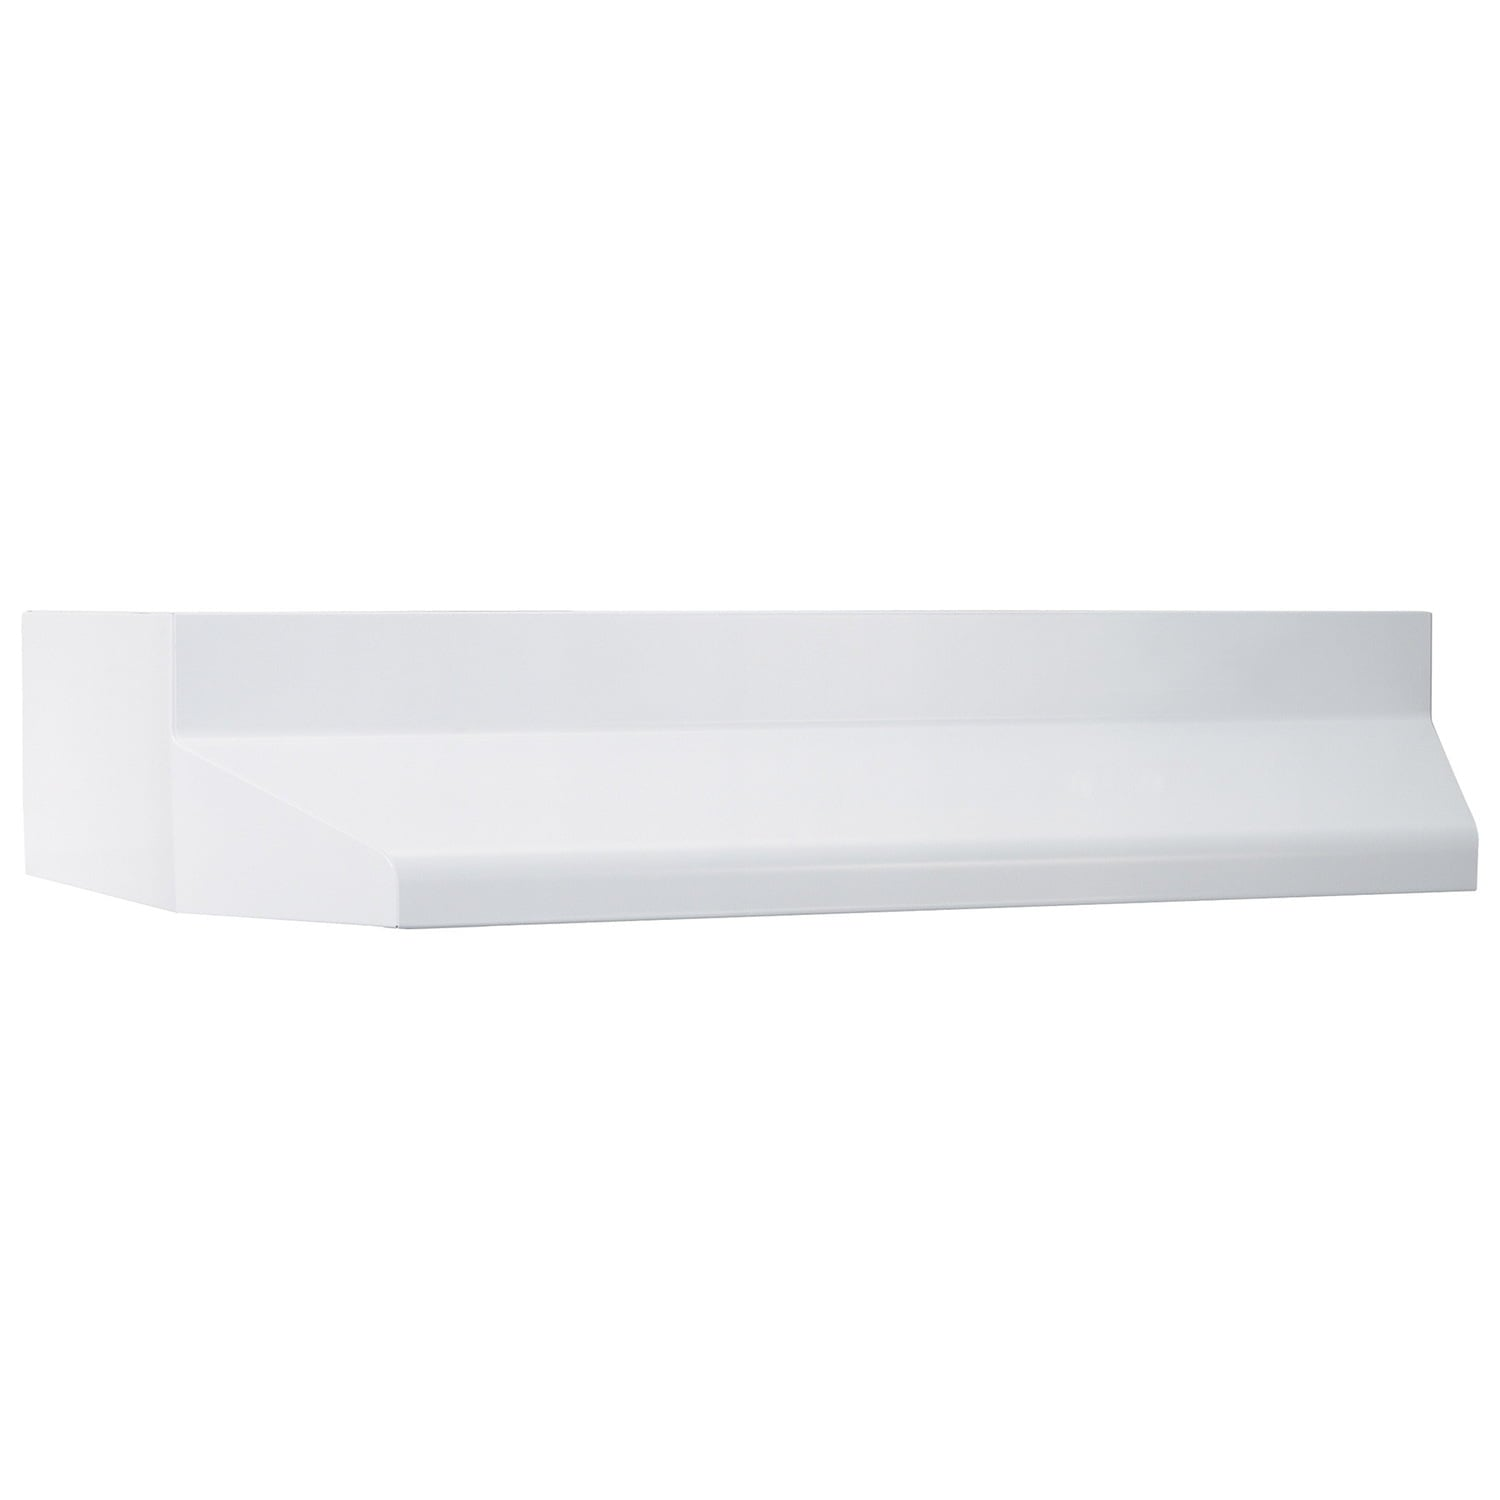 Load image into Gallery viewer, Broan 373001 Broan® 37000 Series 30-Inch Range Hood Shell In White